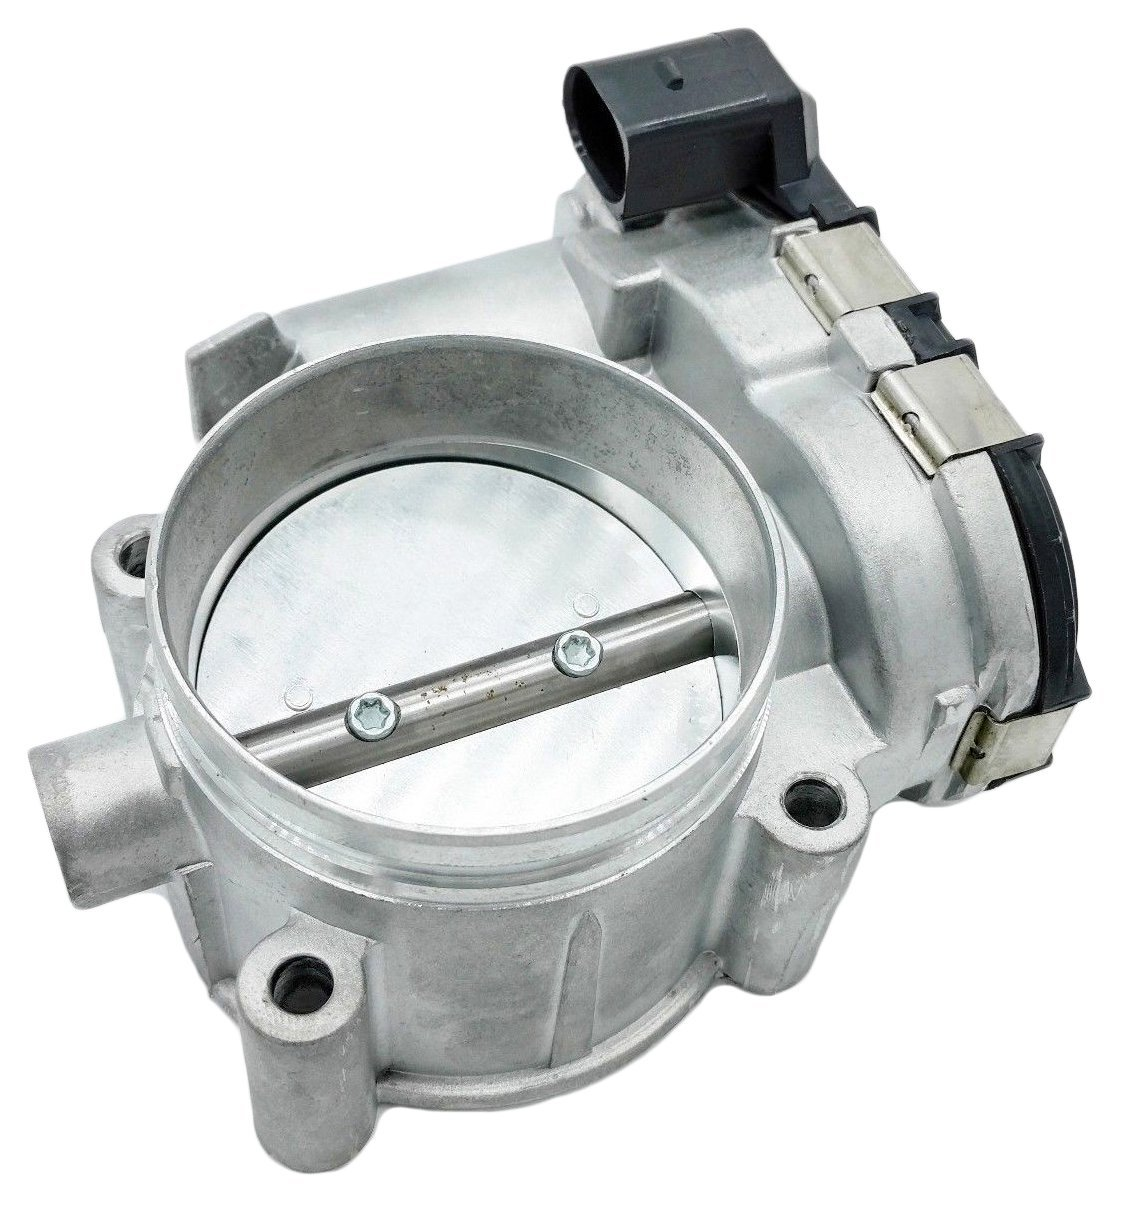 OKAY MOTOR Fuel Injection Throttle Body for A6 A4 Quattro 2.7T R8 S4 S6 S8 3.2L 5.2L by OKAY MOTOR